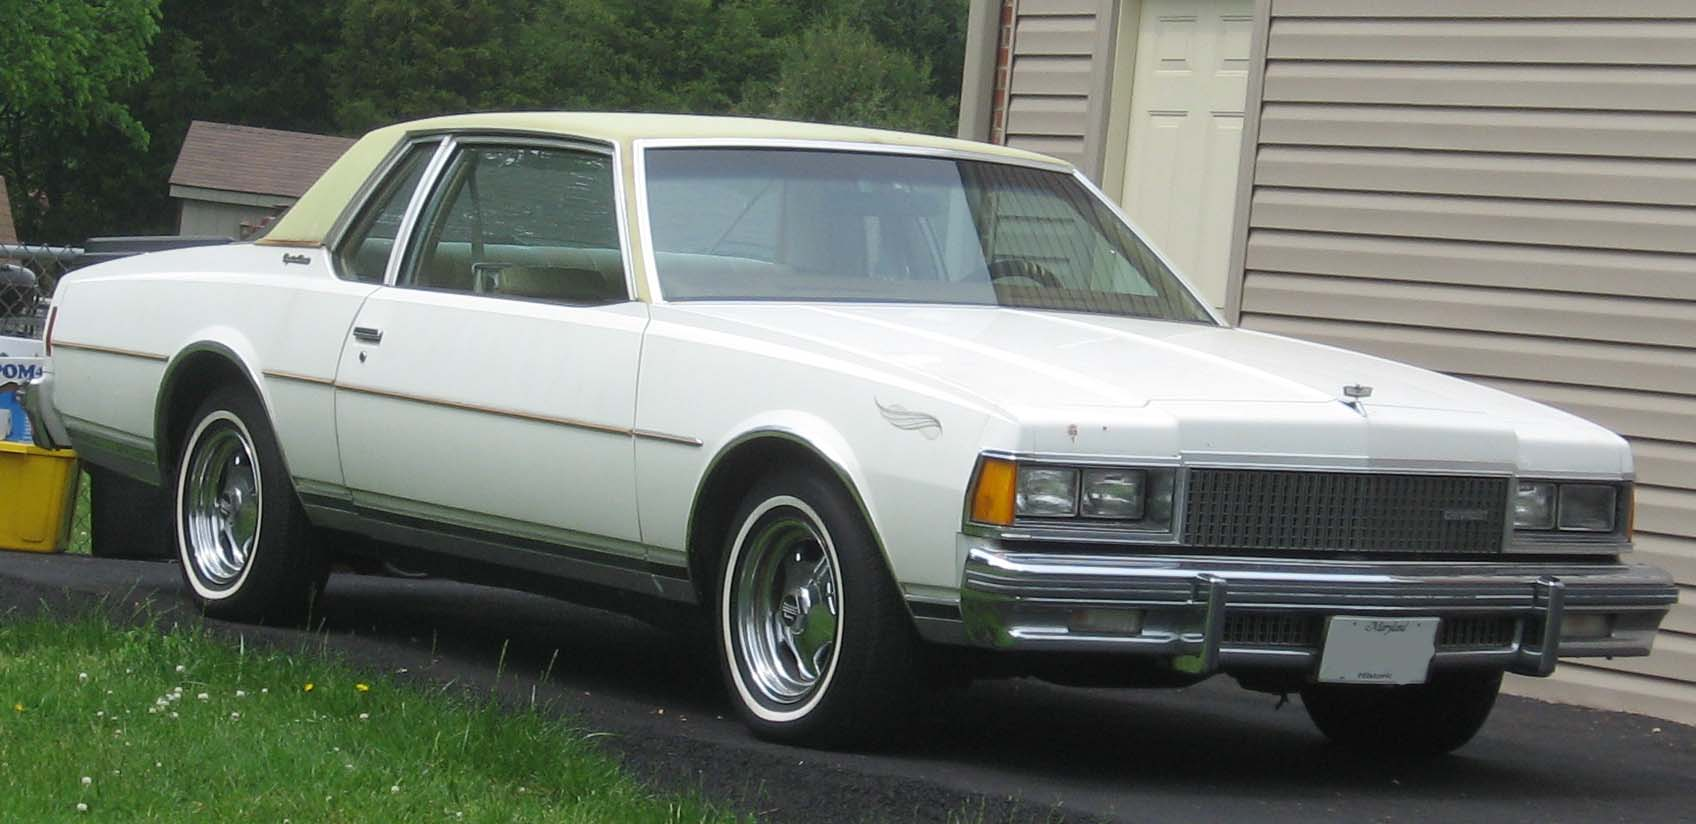 All Chevy 1977 chevrolet : File:1977-79 Chevrolet Caprice Coupe.jpg - Wikimedia Commons